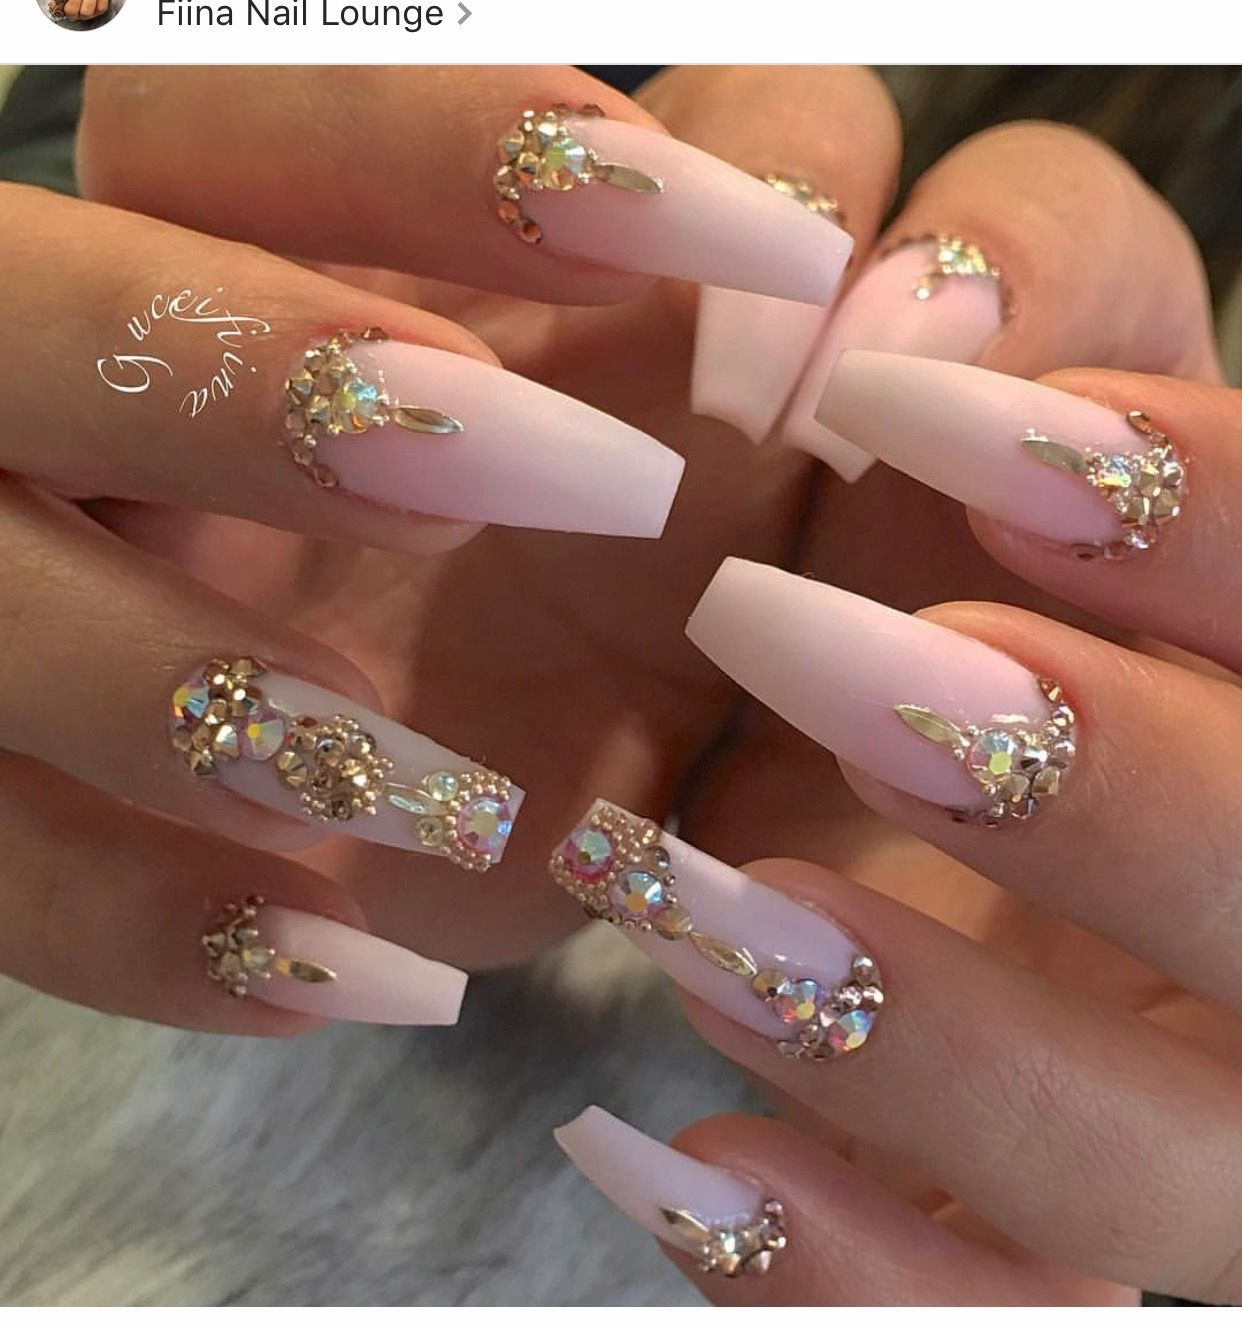 Pin by Shantel McKinney on Pink Nails | Pinterest | Nail nail ...